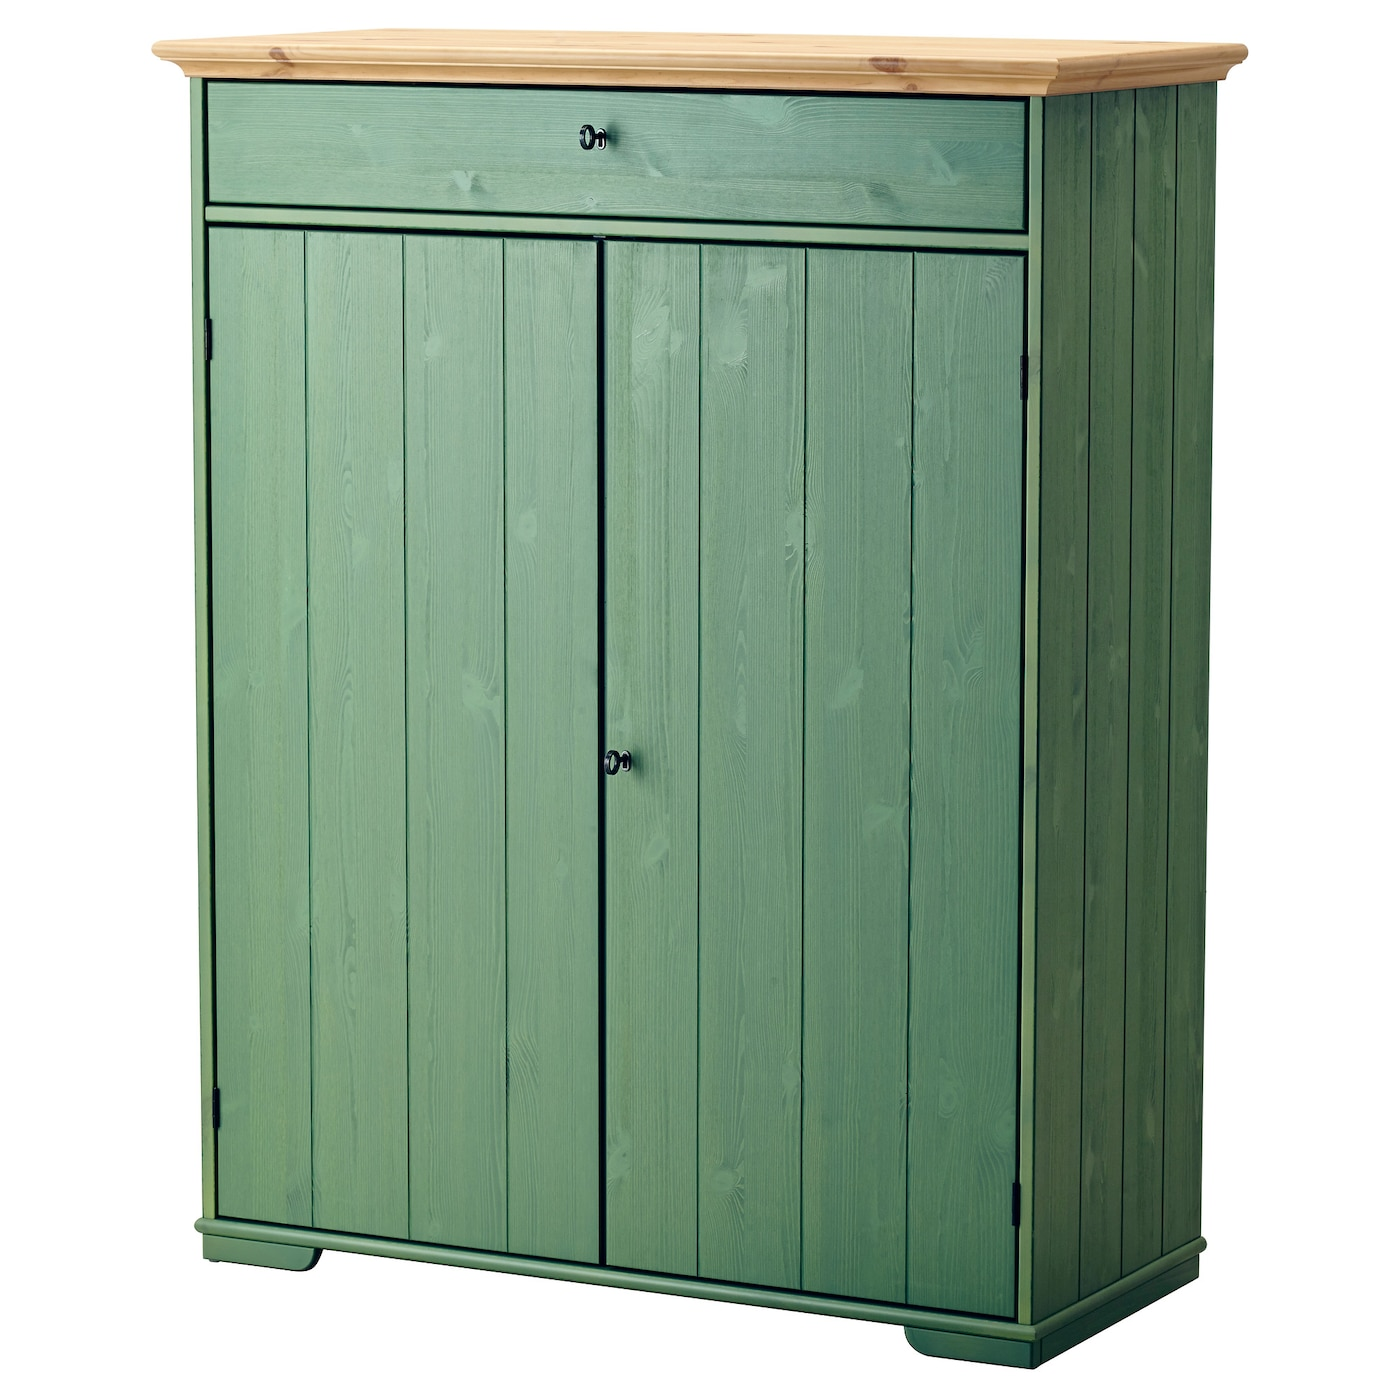 Superb IKEA HURDAL Linen Cabinet The Drawer Slide Smoothly And Steadily On Wooden  Gliders.